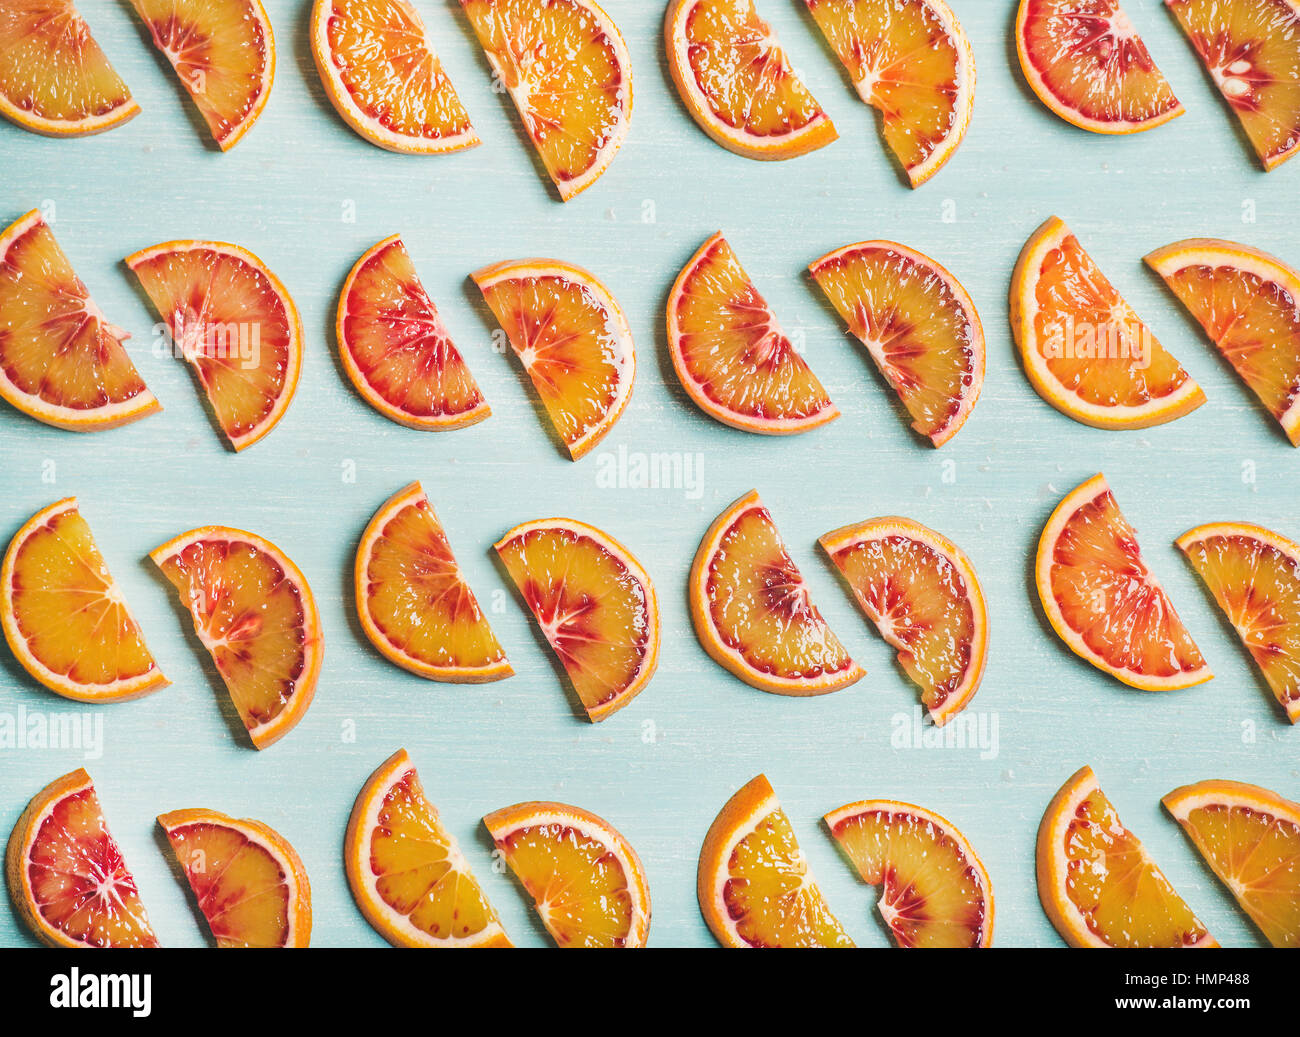 Fresh juicy blood orange slices over blue painted table background - Stock Image